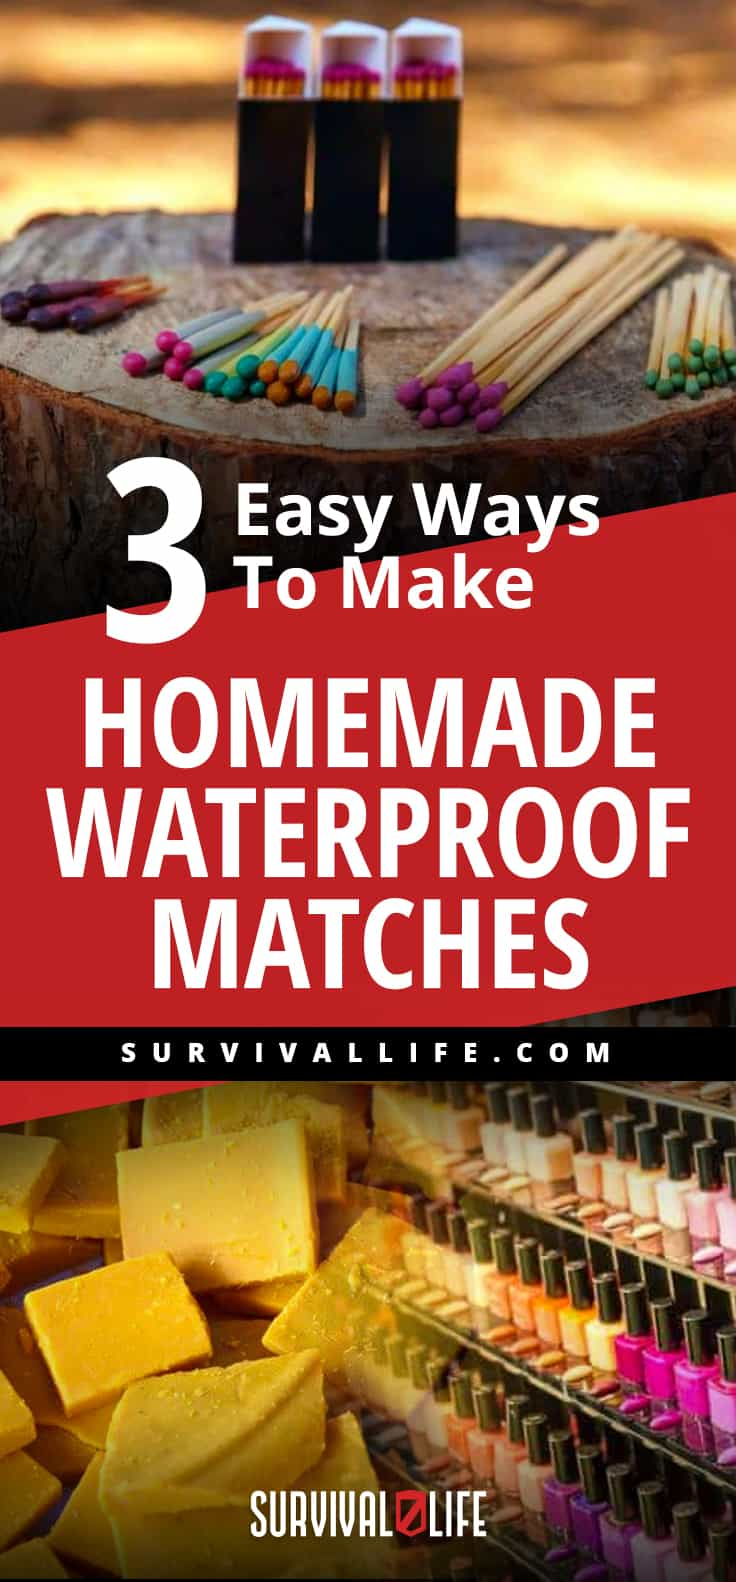 Waterproof Matches | 3 Easy Ways To Make Homemade Waterproof Matches